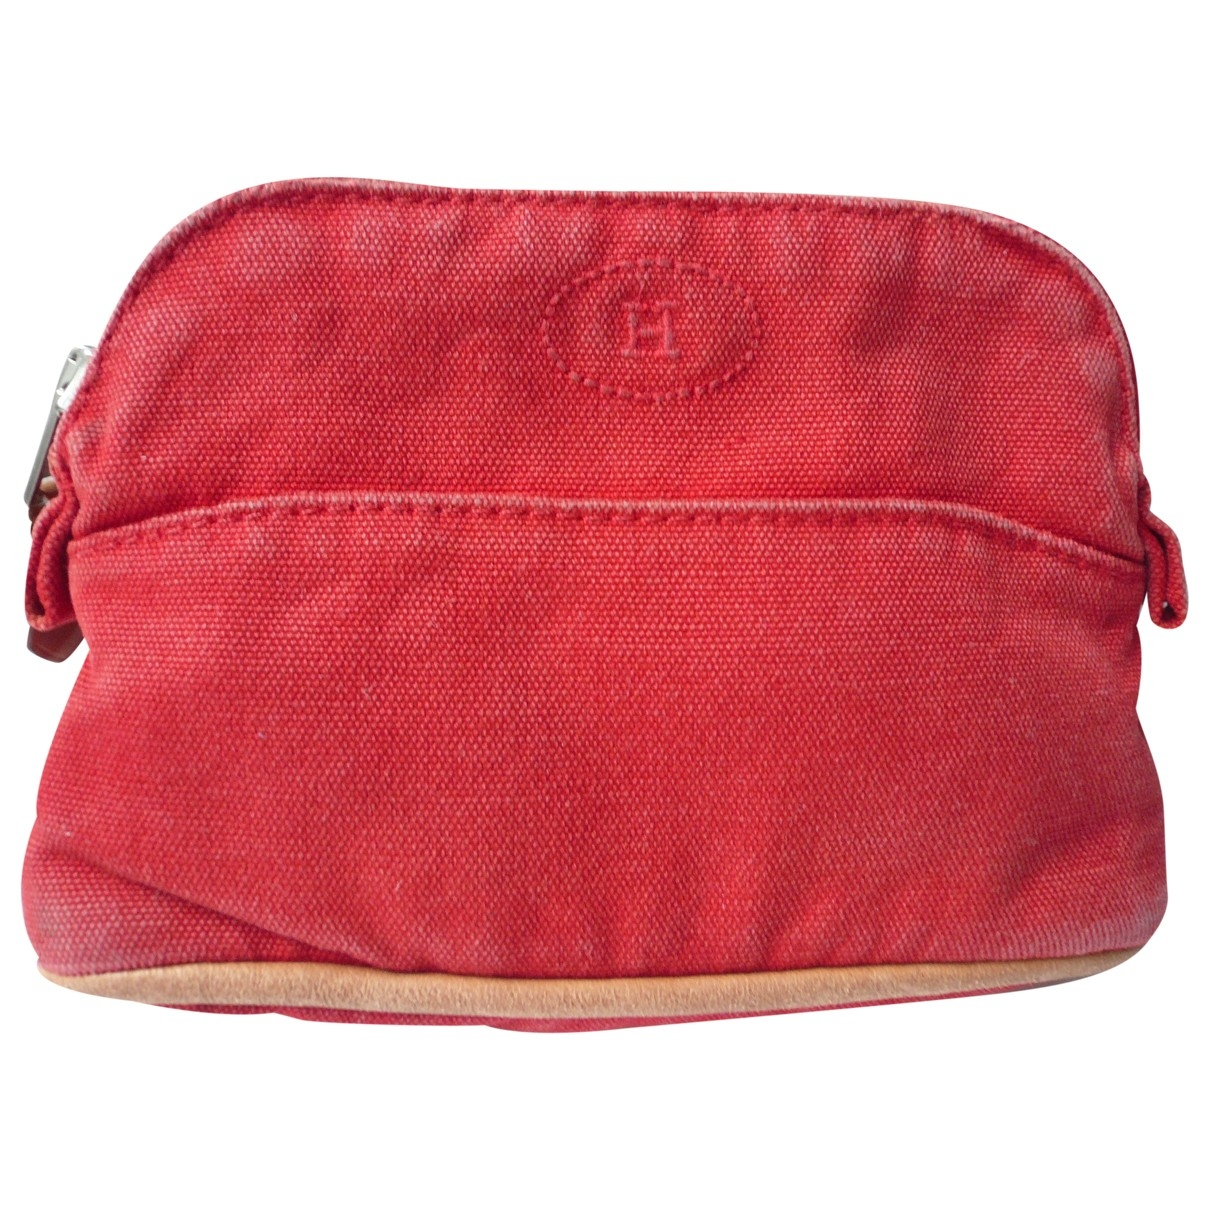 Hermès Bolide Red Cotton Travel bag for Women \N